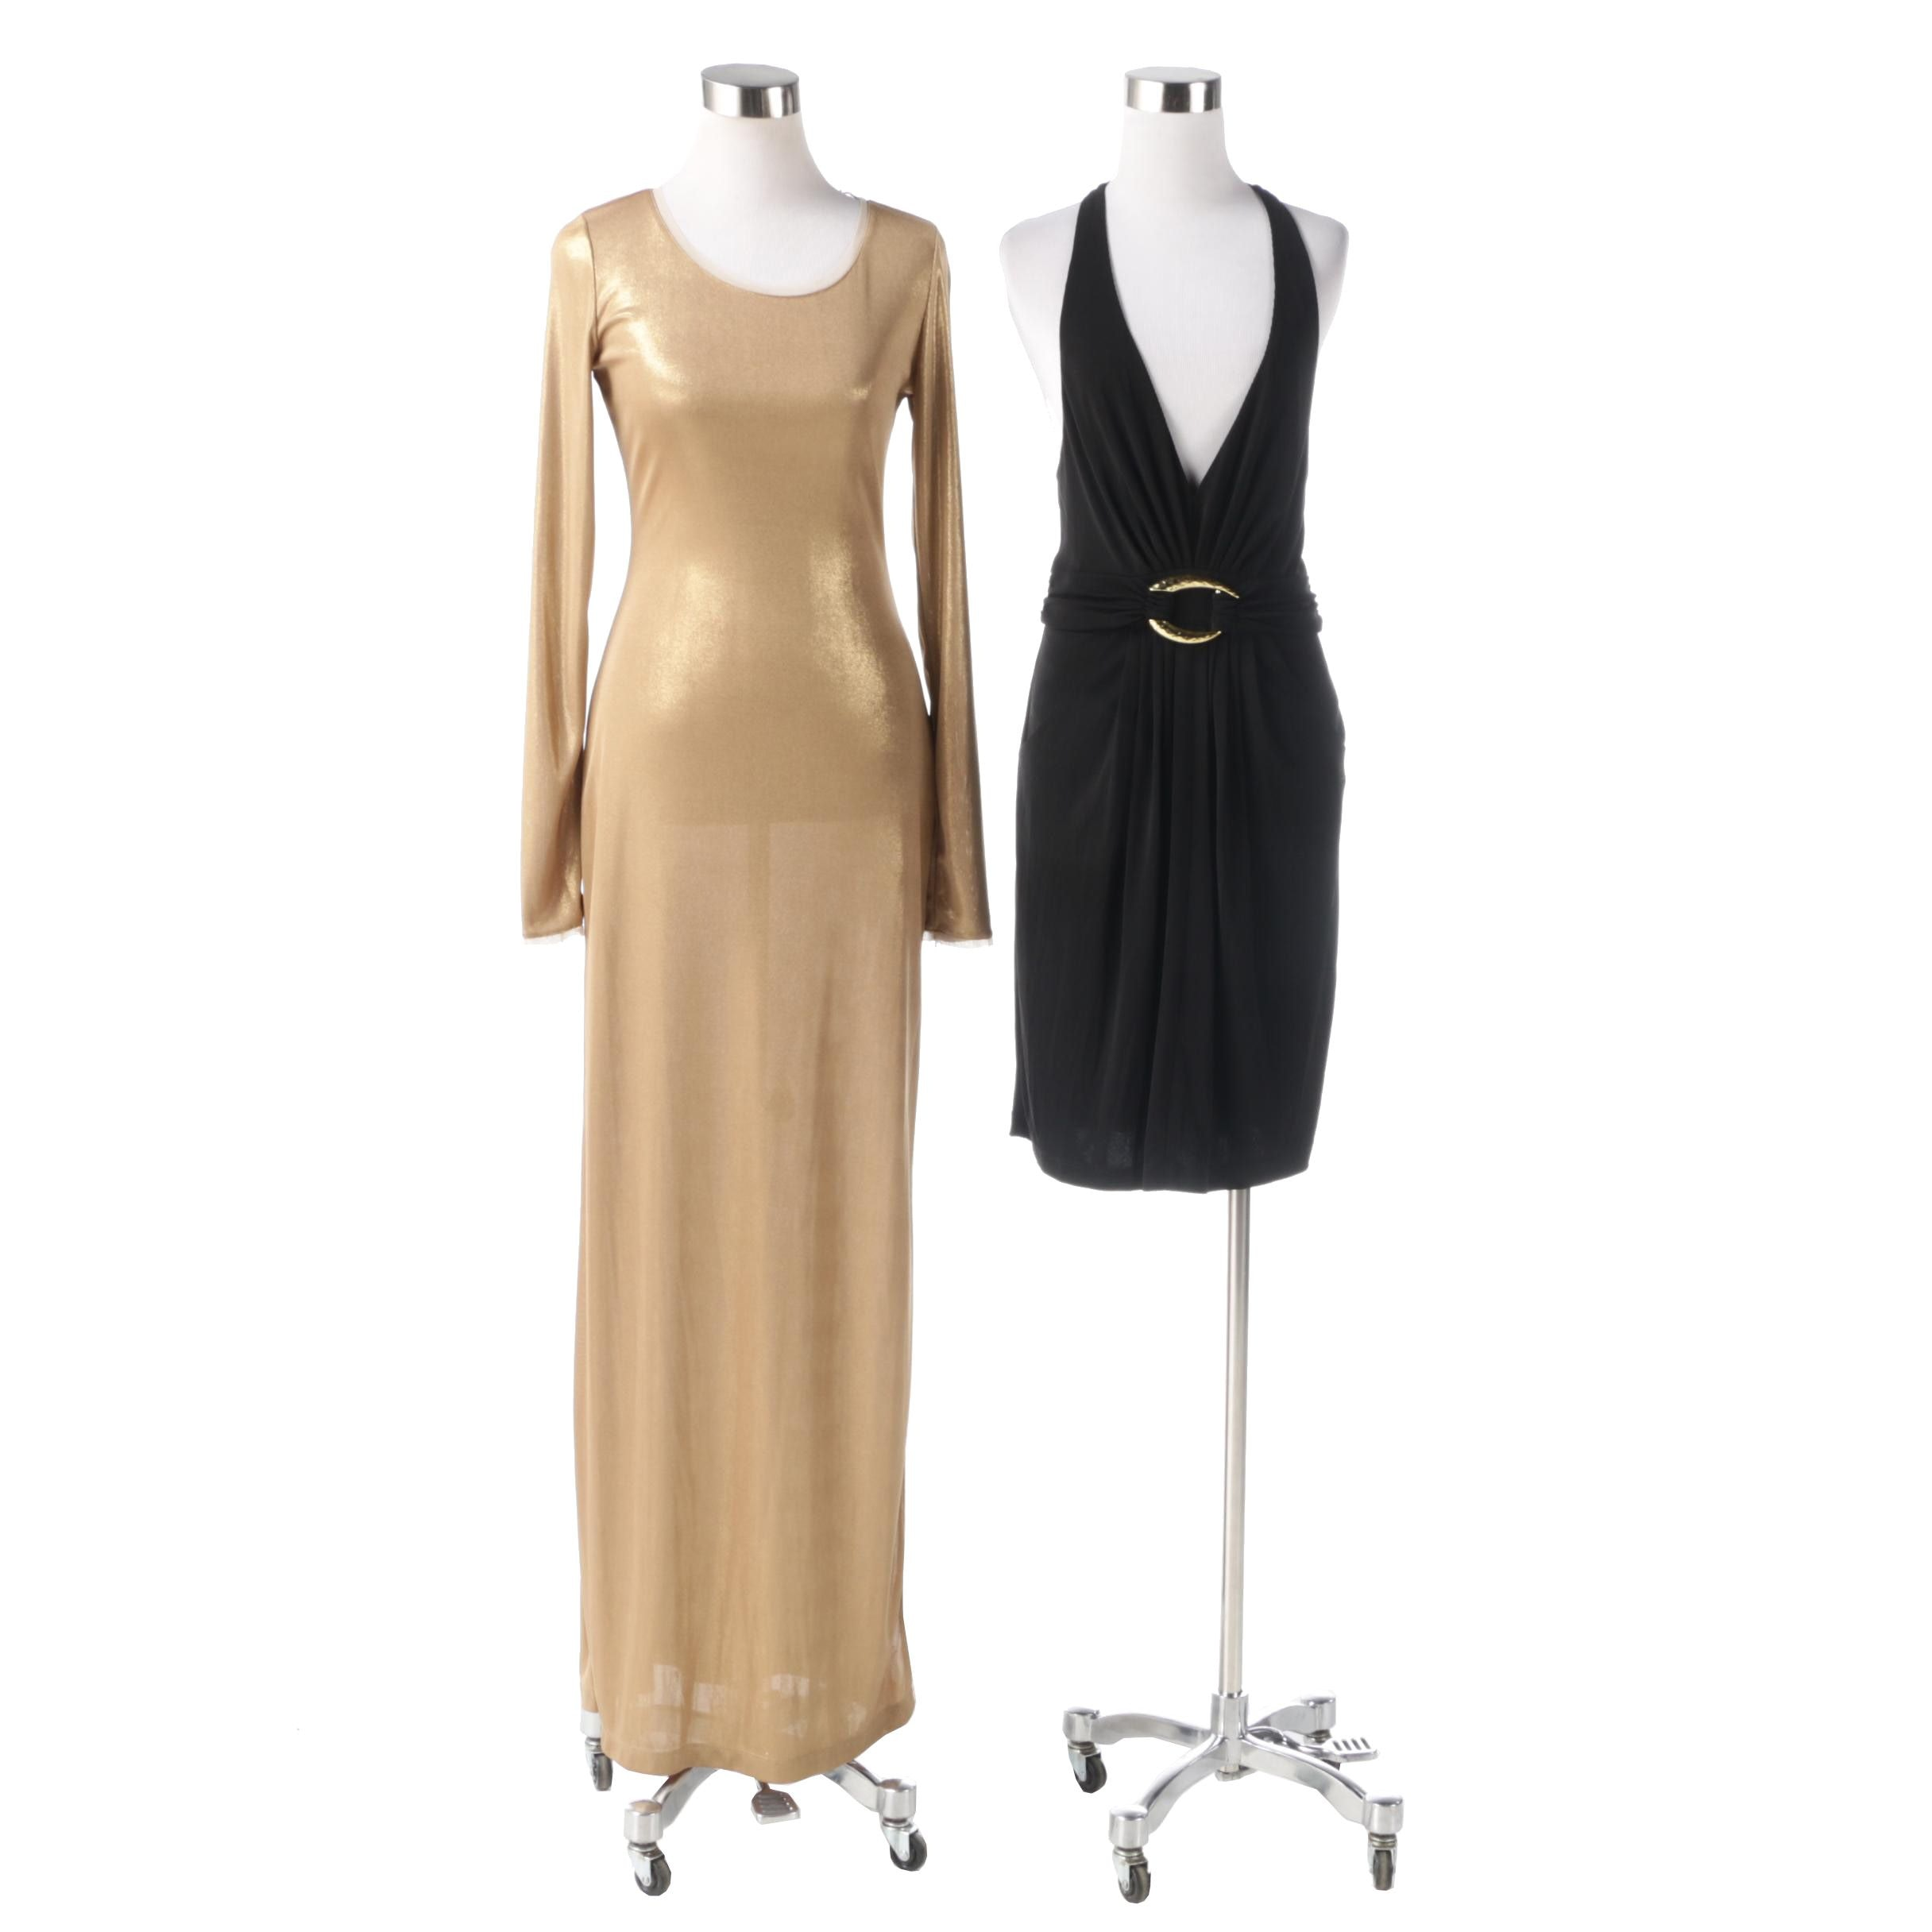 "BCBG Max Azria Gold ""Fresno"" Dress and Black Knit Jersey Buckle Halter Dress"